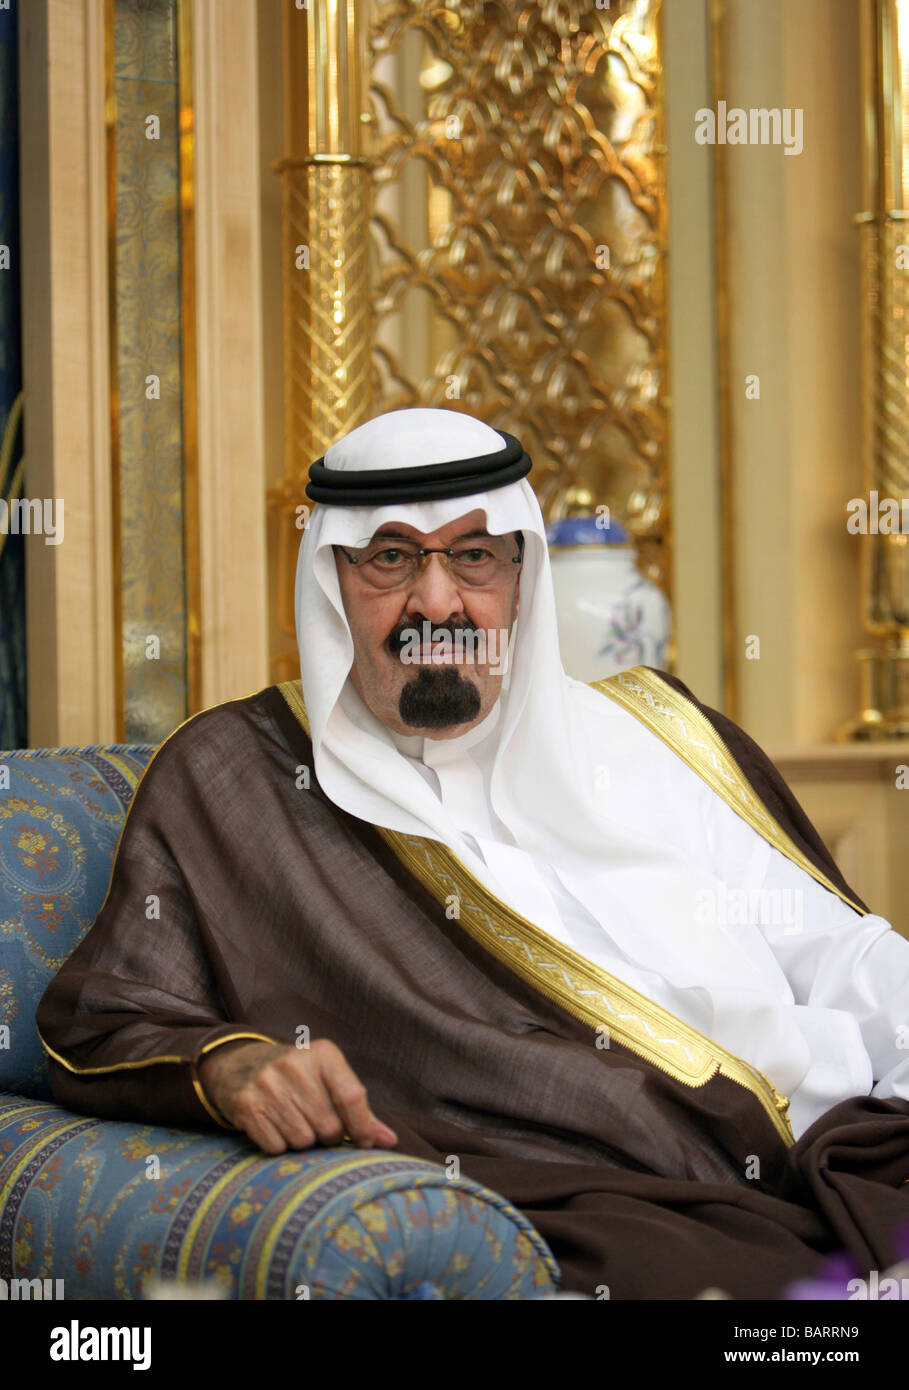 Abdullah bin Abdul Aziz Al Saoud, Roi d'Arabie Saoudite Photo Stock